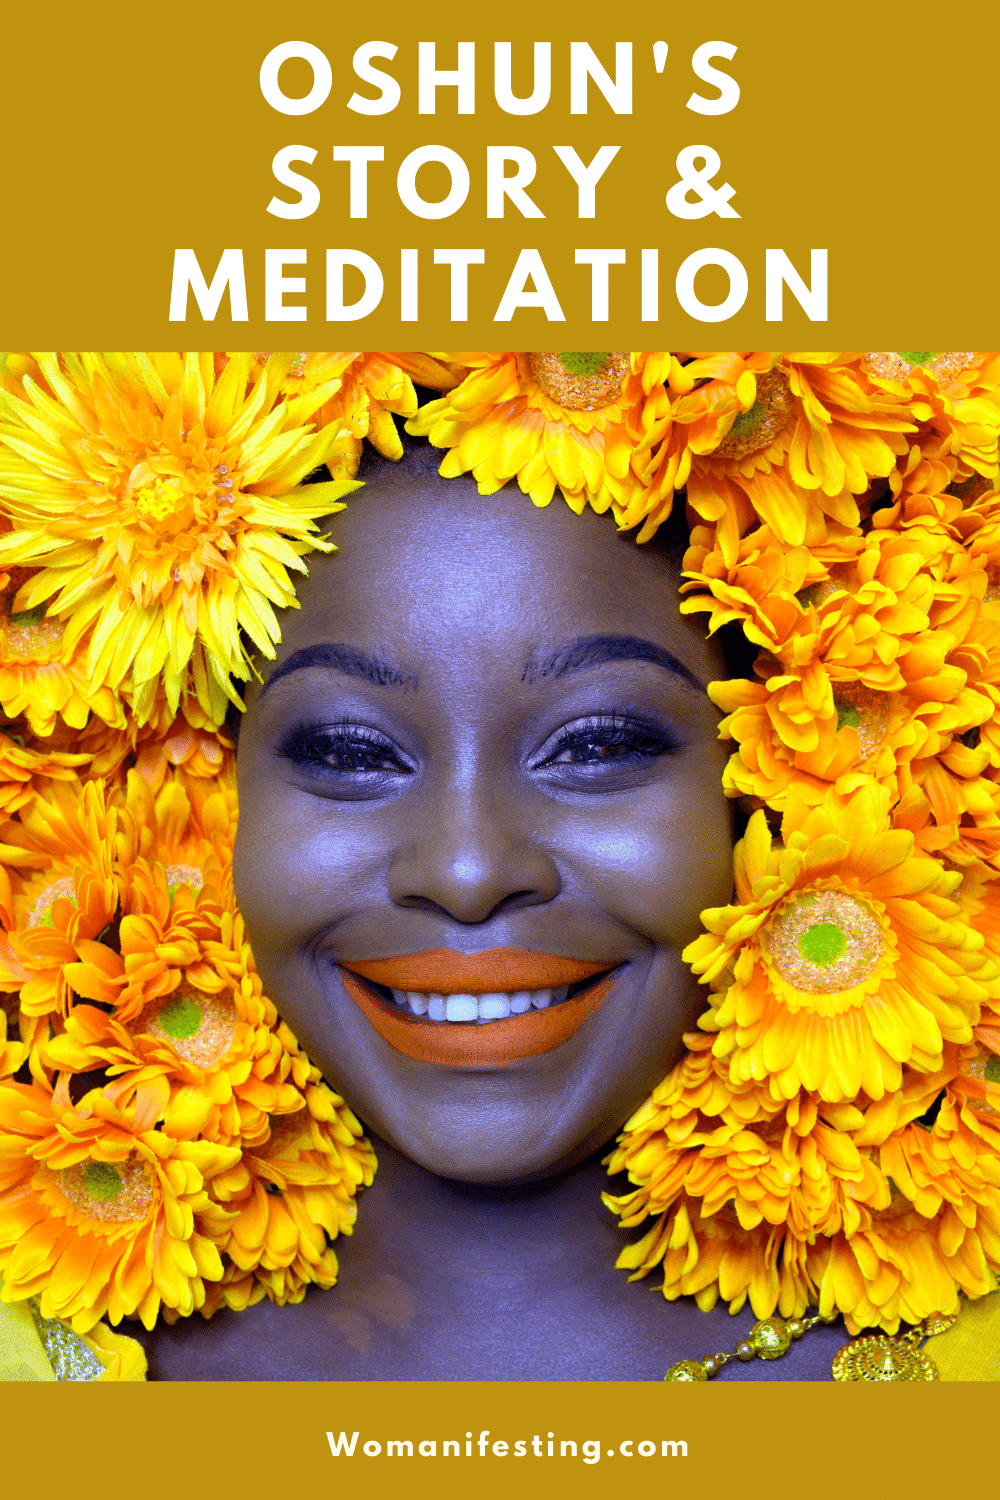 Oshun's Story, Meditation and Rituals: African Goddess Initiation Fest [Video]